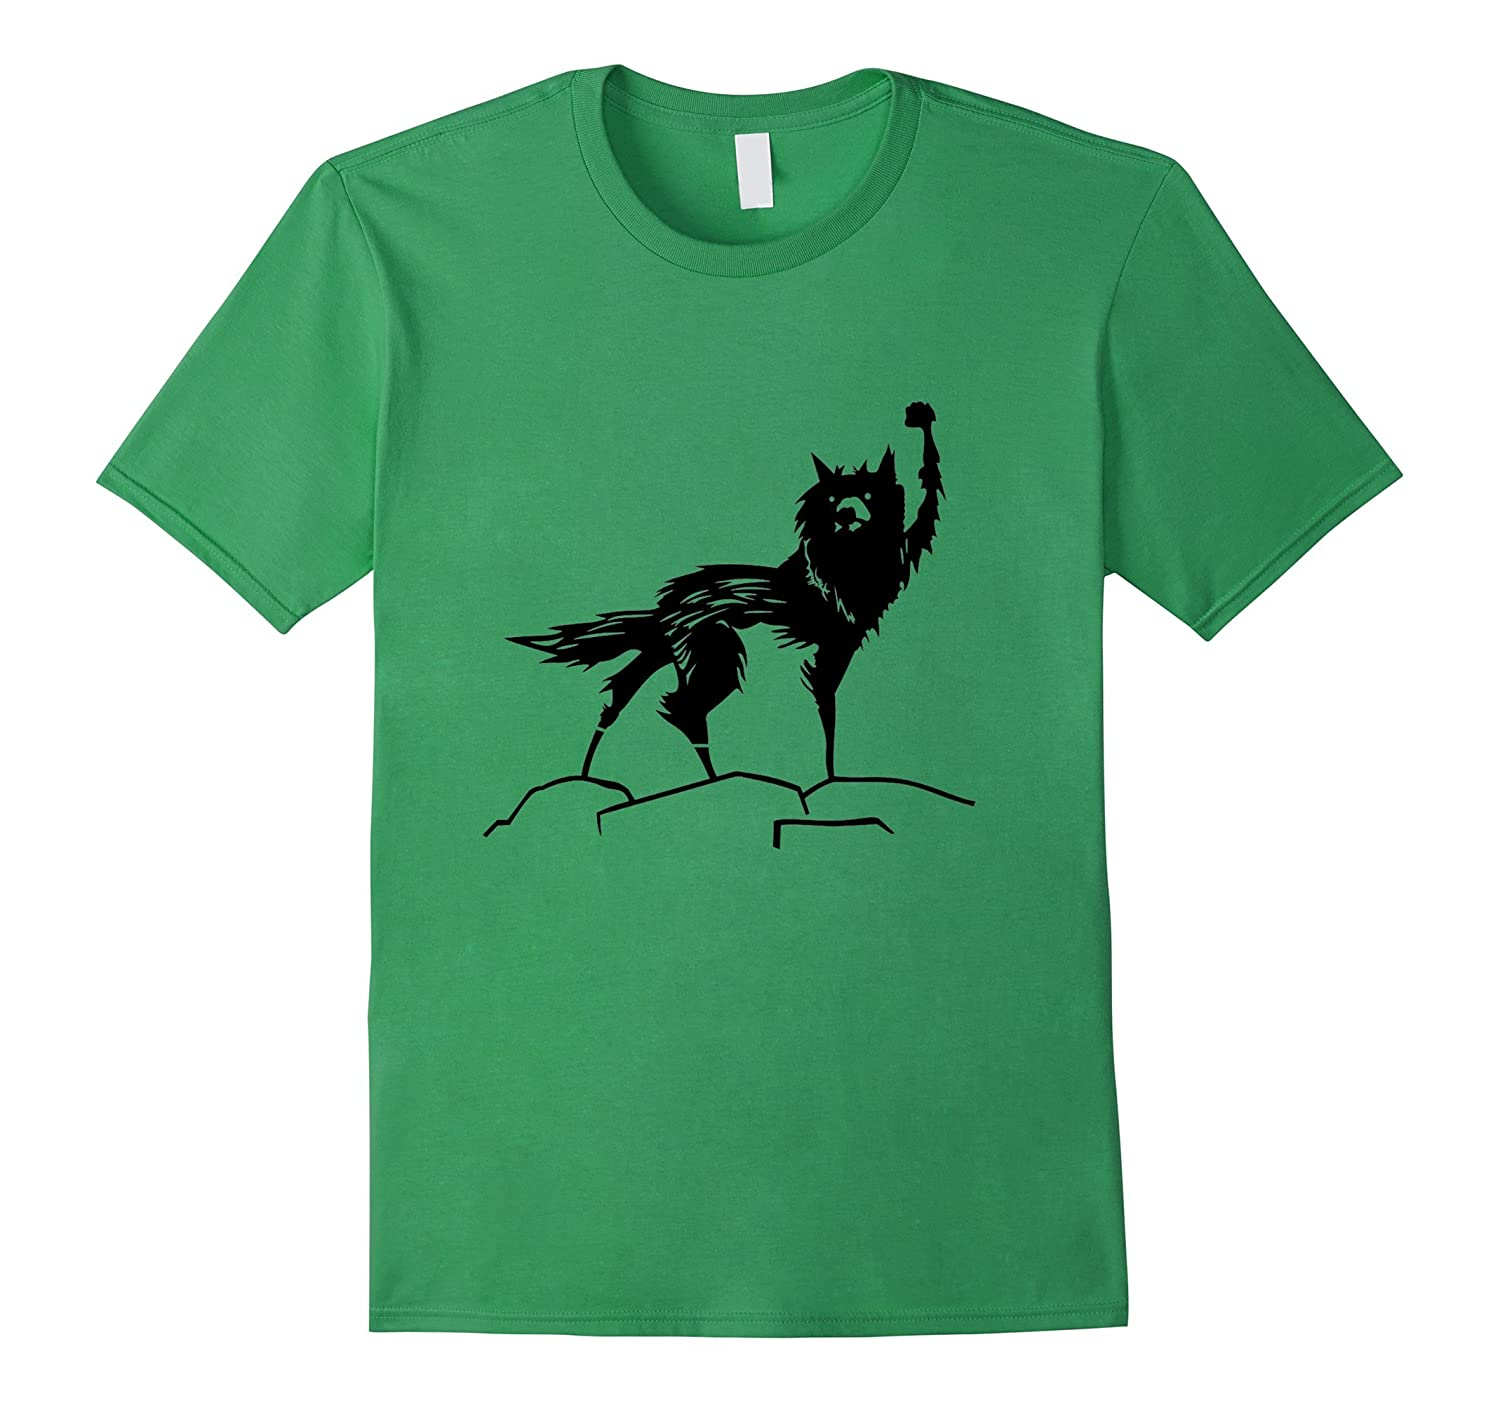 fantastic mr fox wolf t shirt rt rateeshirt. Black Bedroom Furniture Sets. Home Design Ideas